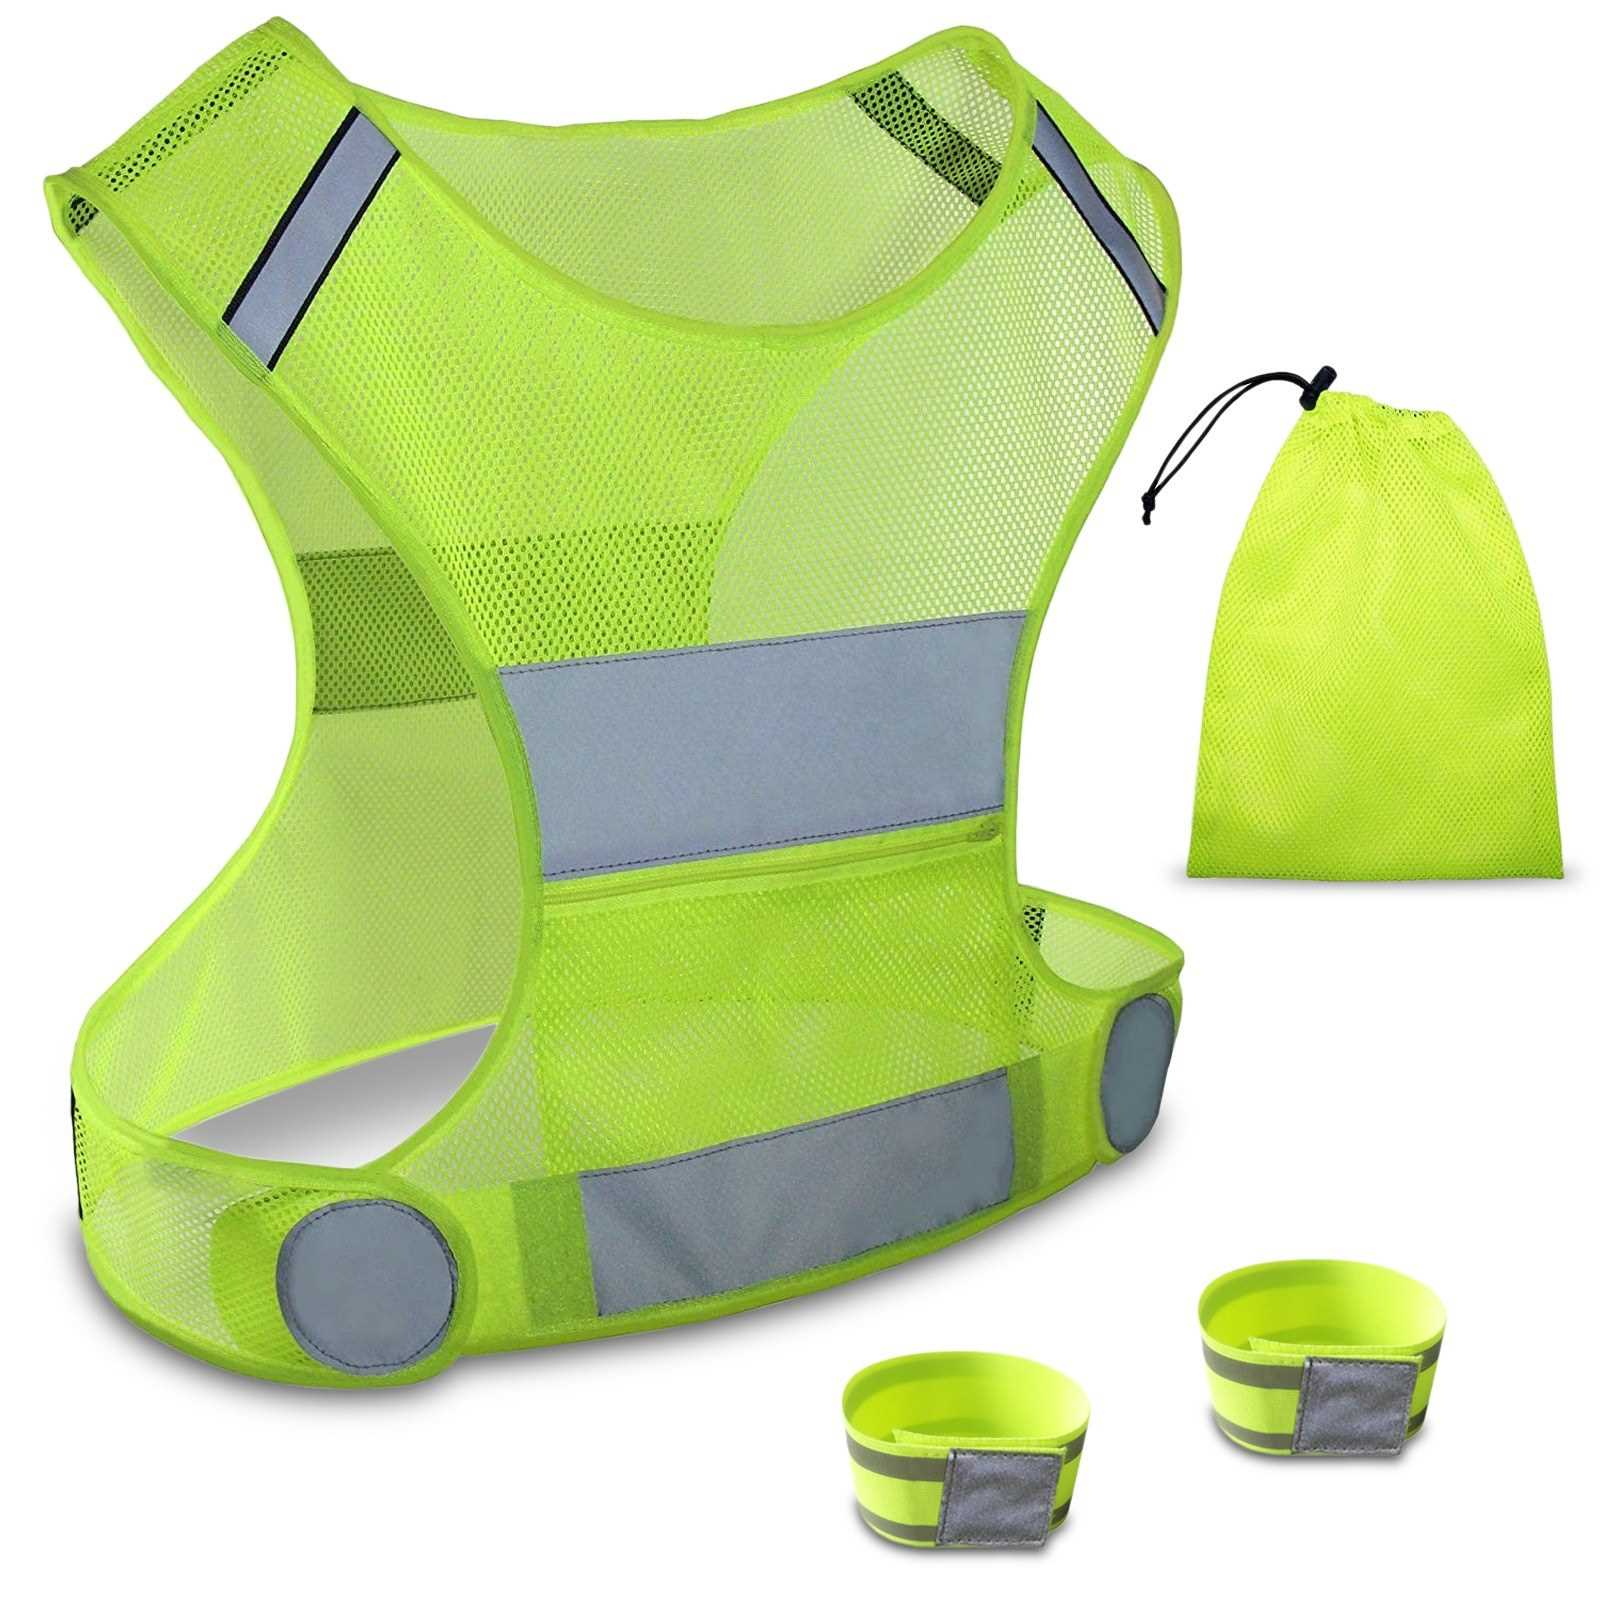 [ Estle ] Adjustable High Visibility Reflective Vest with Reflective Wrist Arm Bands Safety Gear for Night Cycling Jogging Running (Standard)